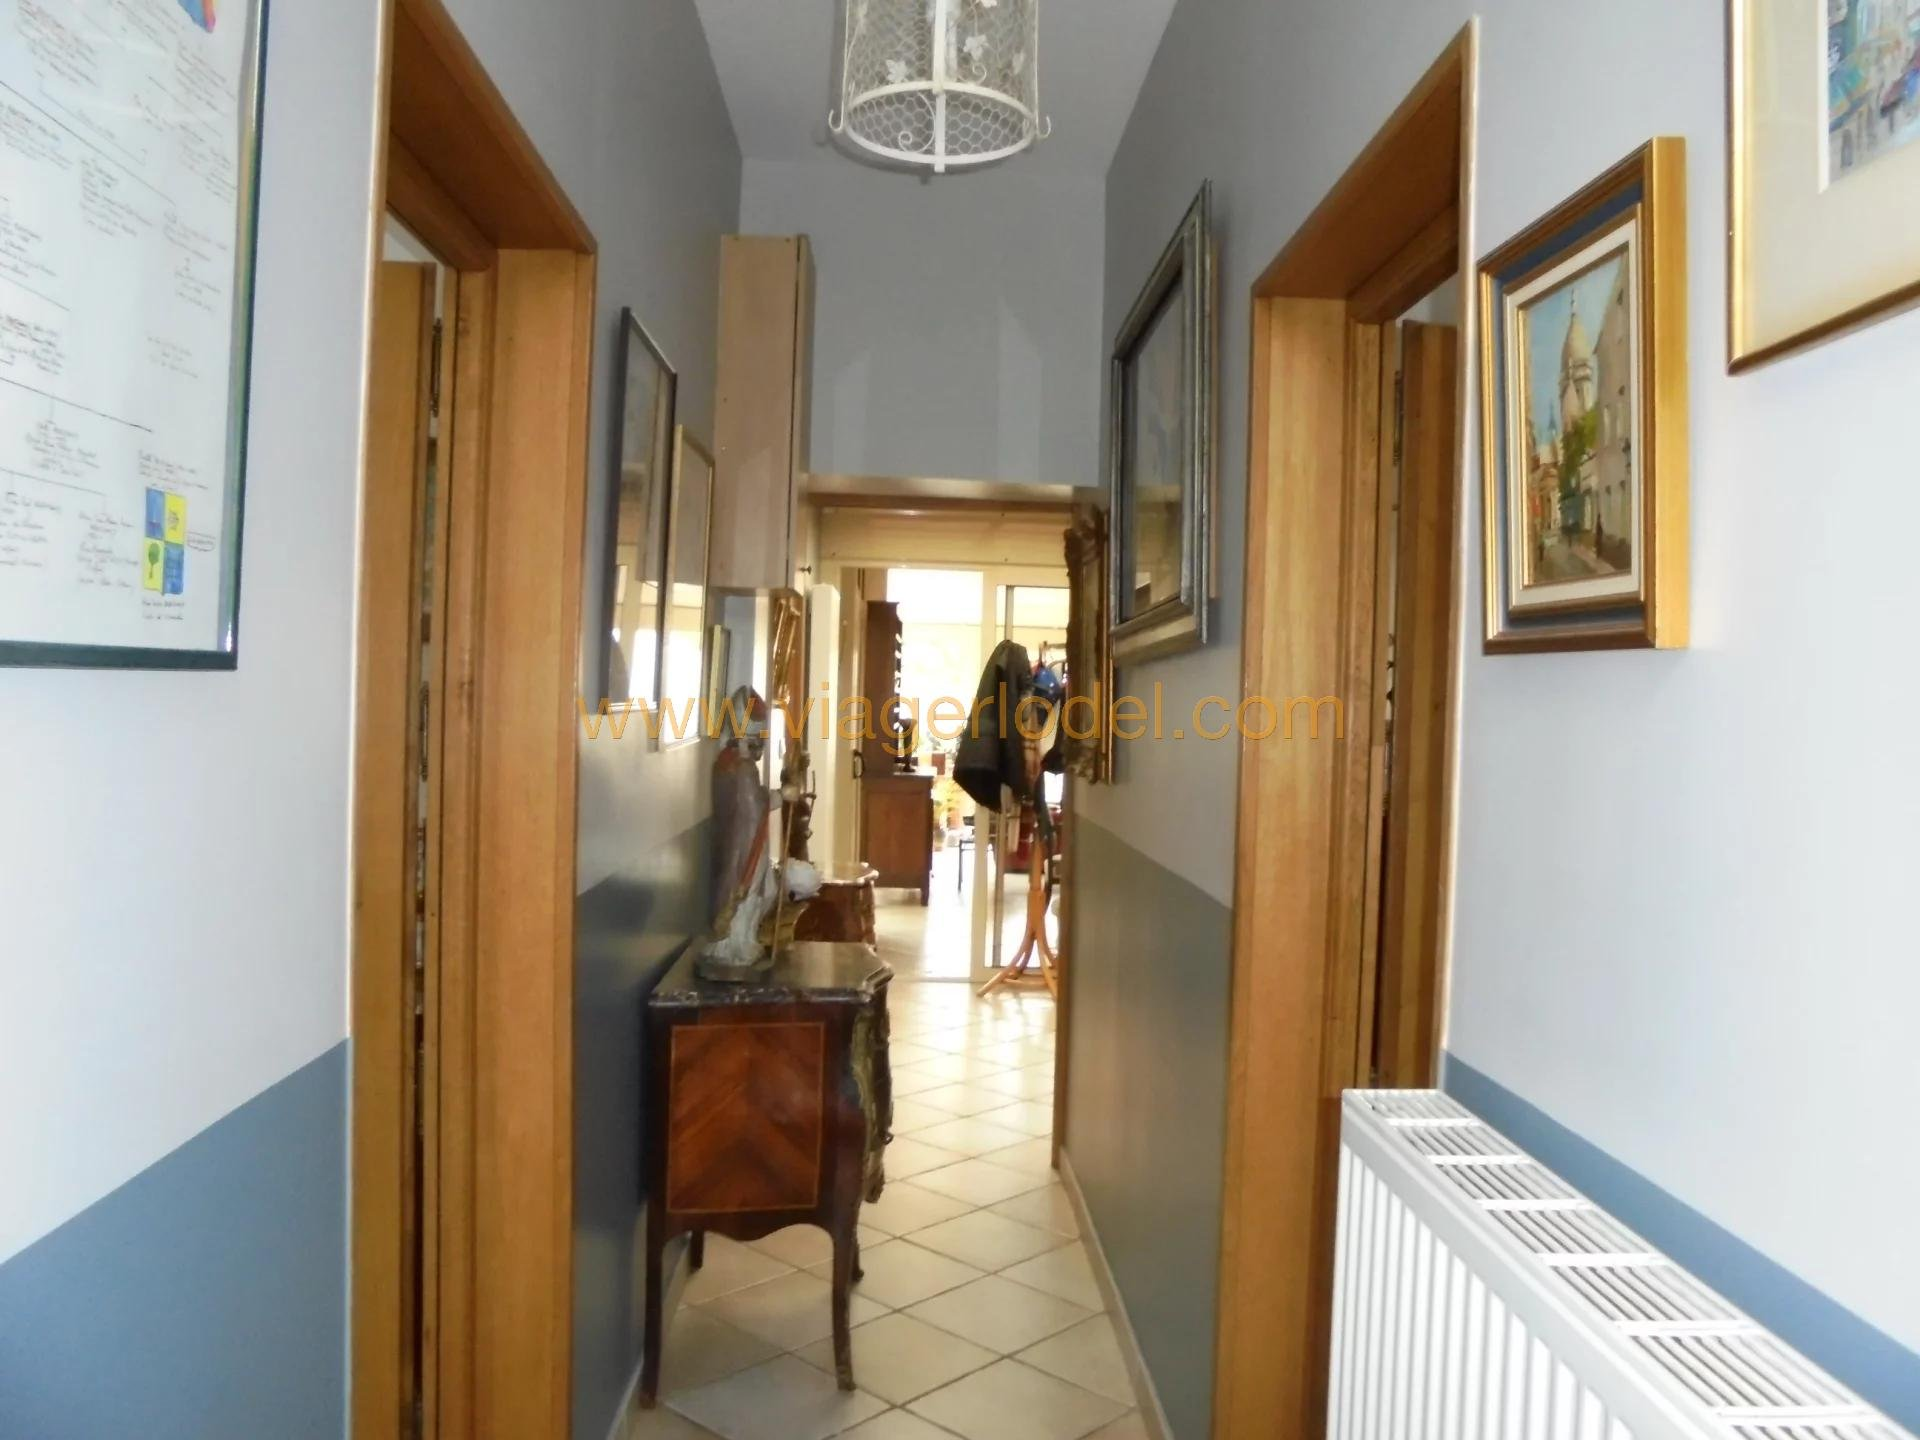 Ref.: 8271 - LIFE ANNUITY - OCCUPIED HOUSE - CAMBRAI (59)